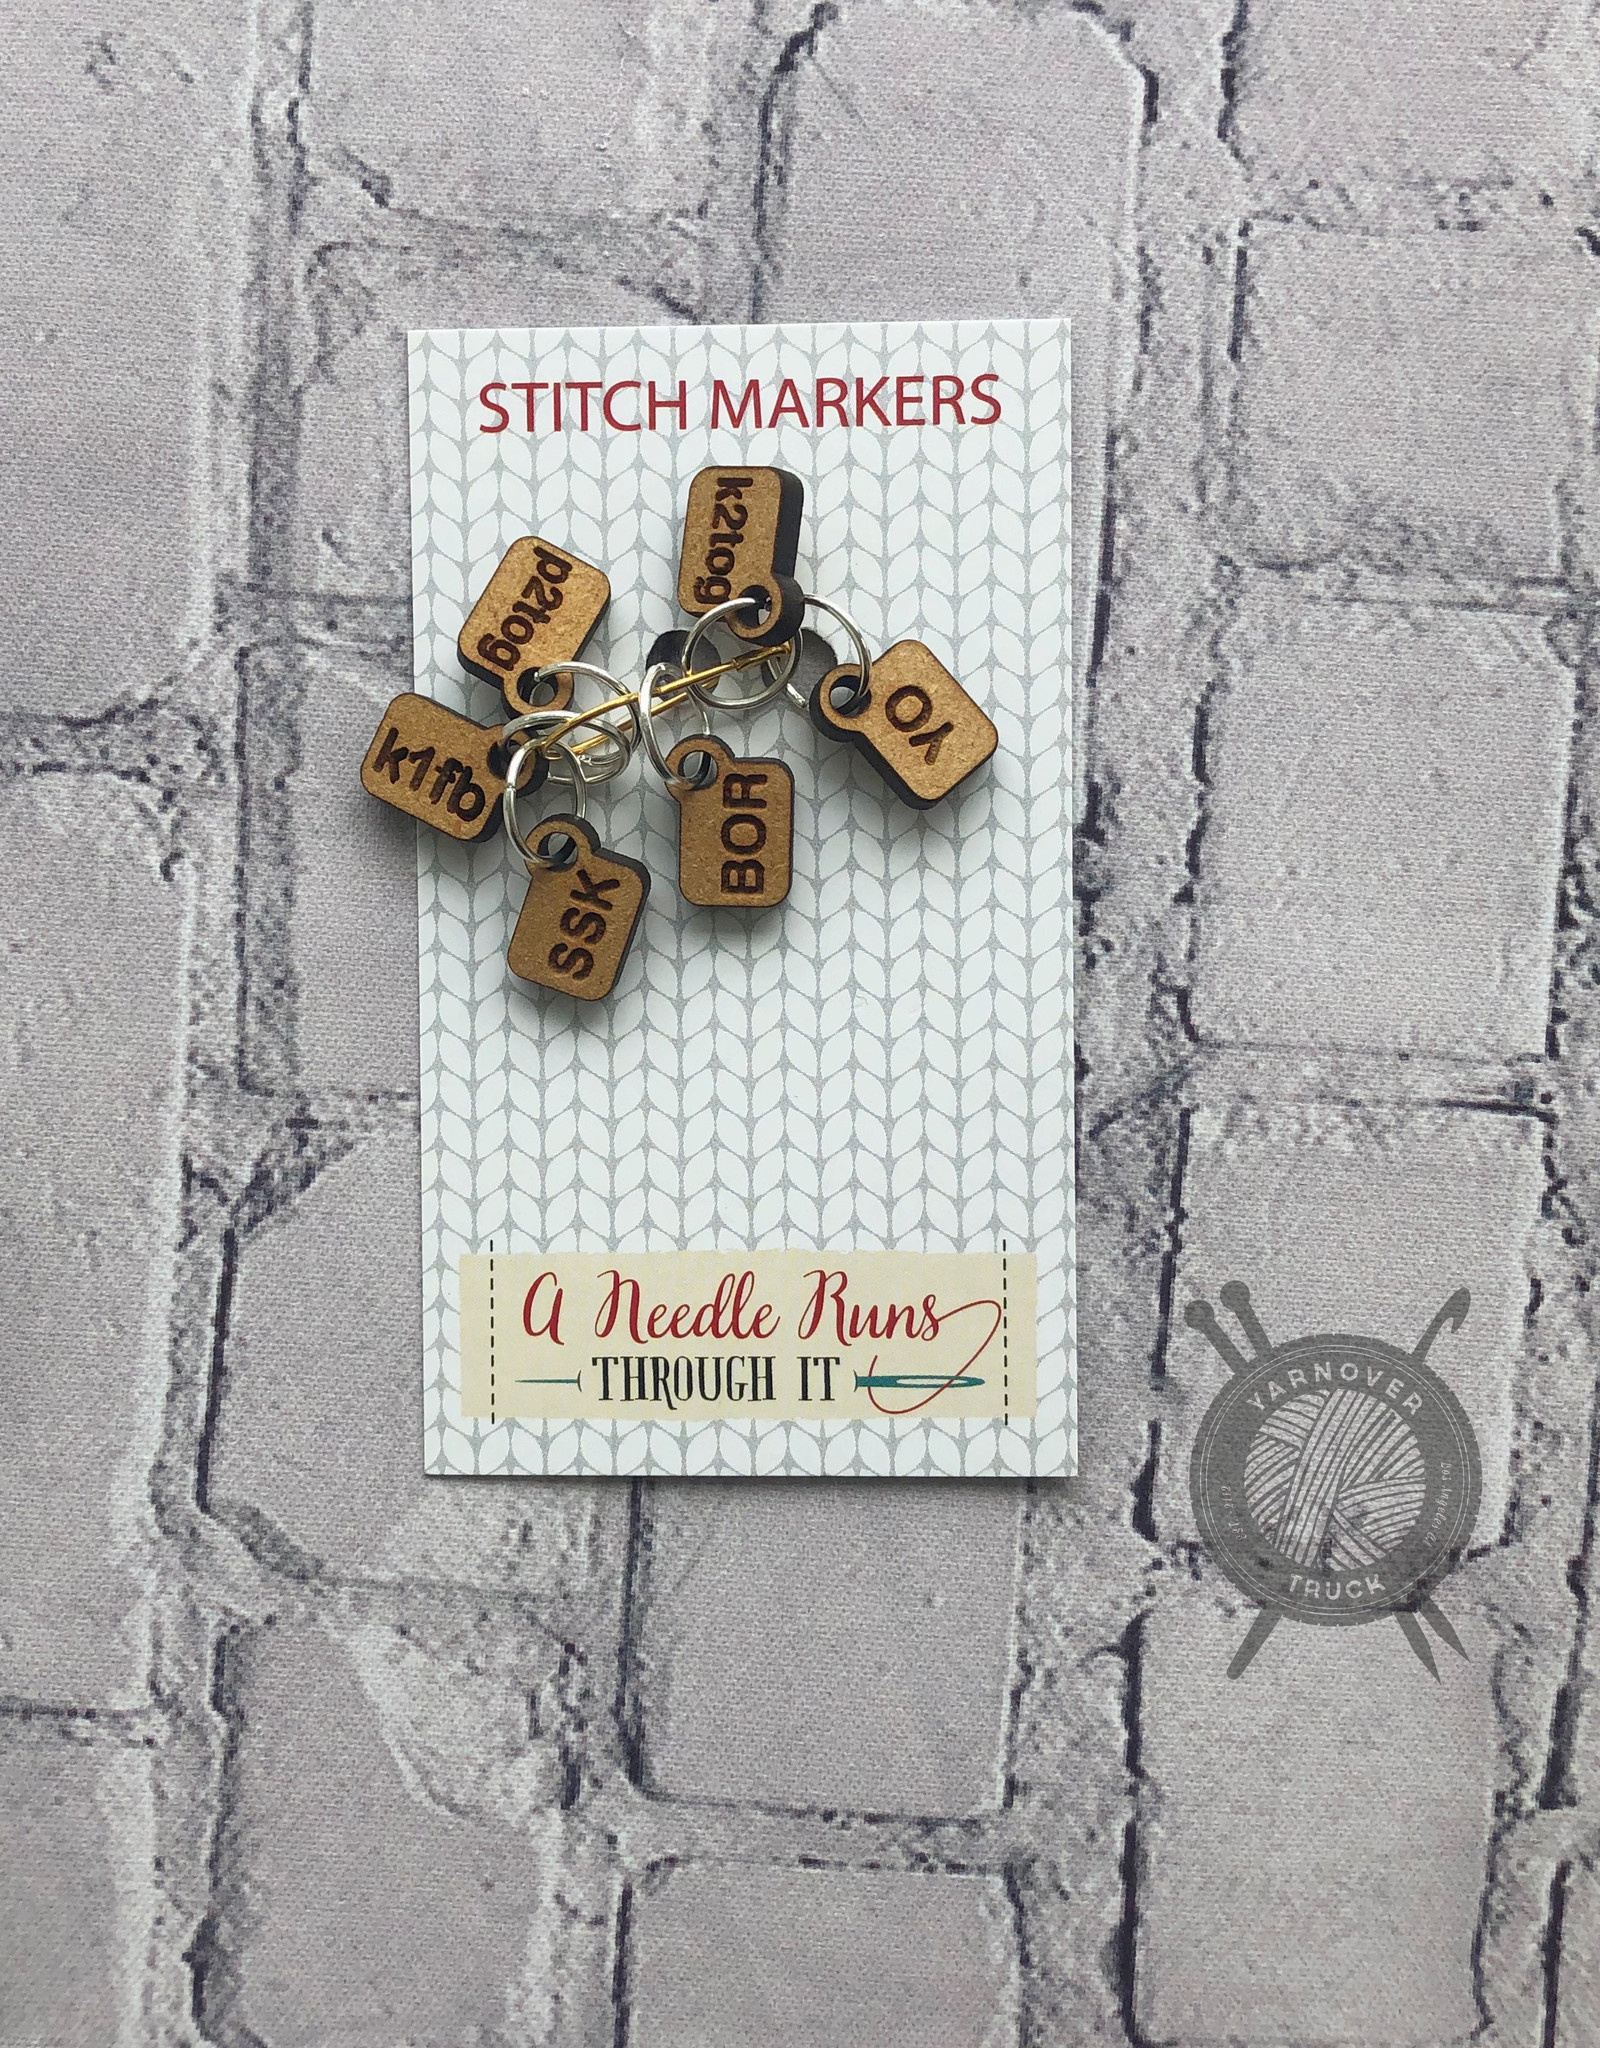 A Needle Runs Through It Helpful Stitch Marker set for Knitting